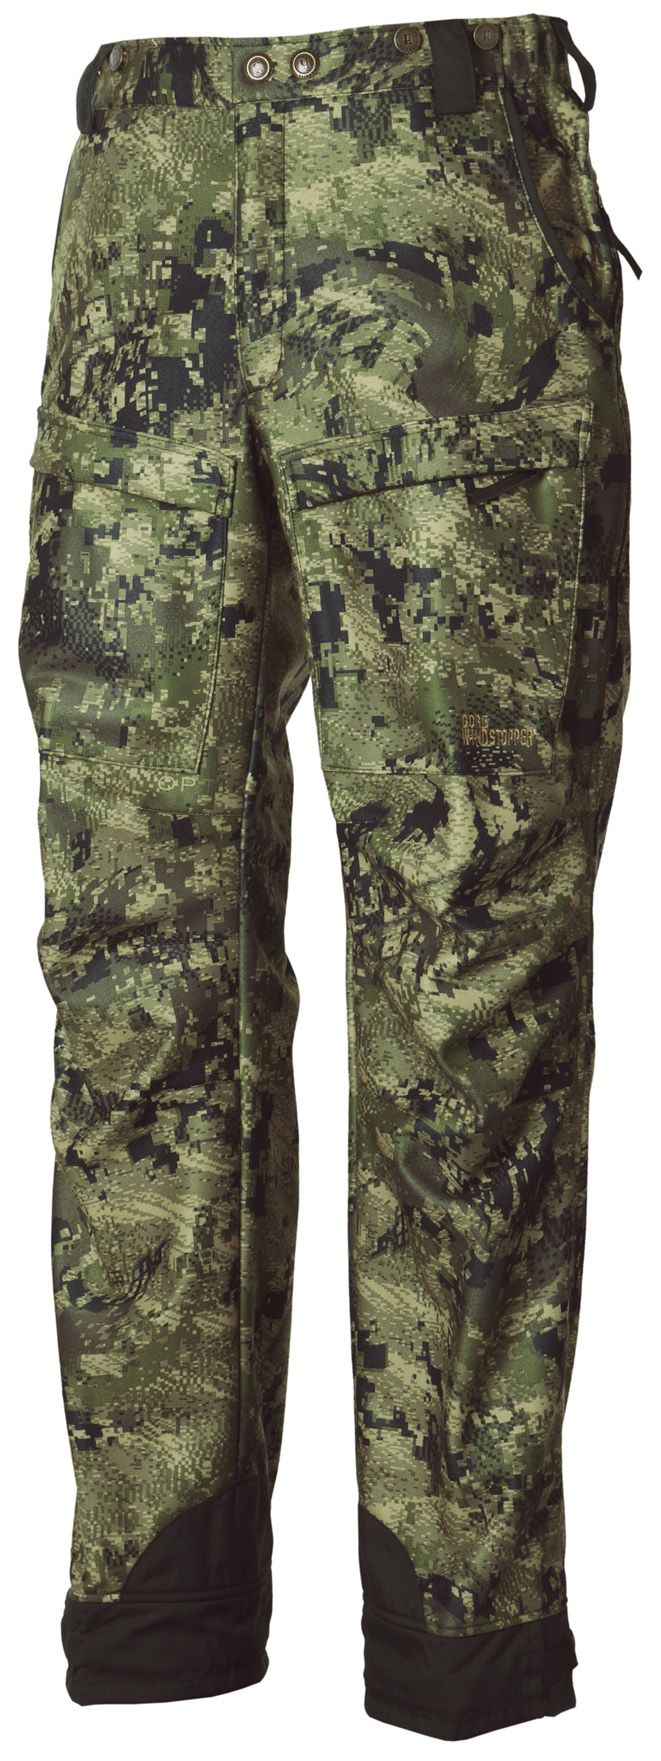 pantalon de chasse q fleece optifade camo h rkila. Black Bedroom Furniture Sets. Home Design Ideas